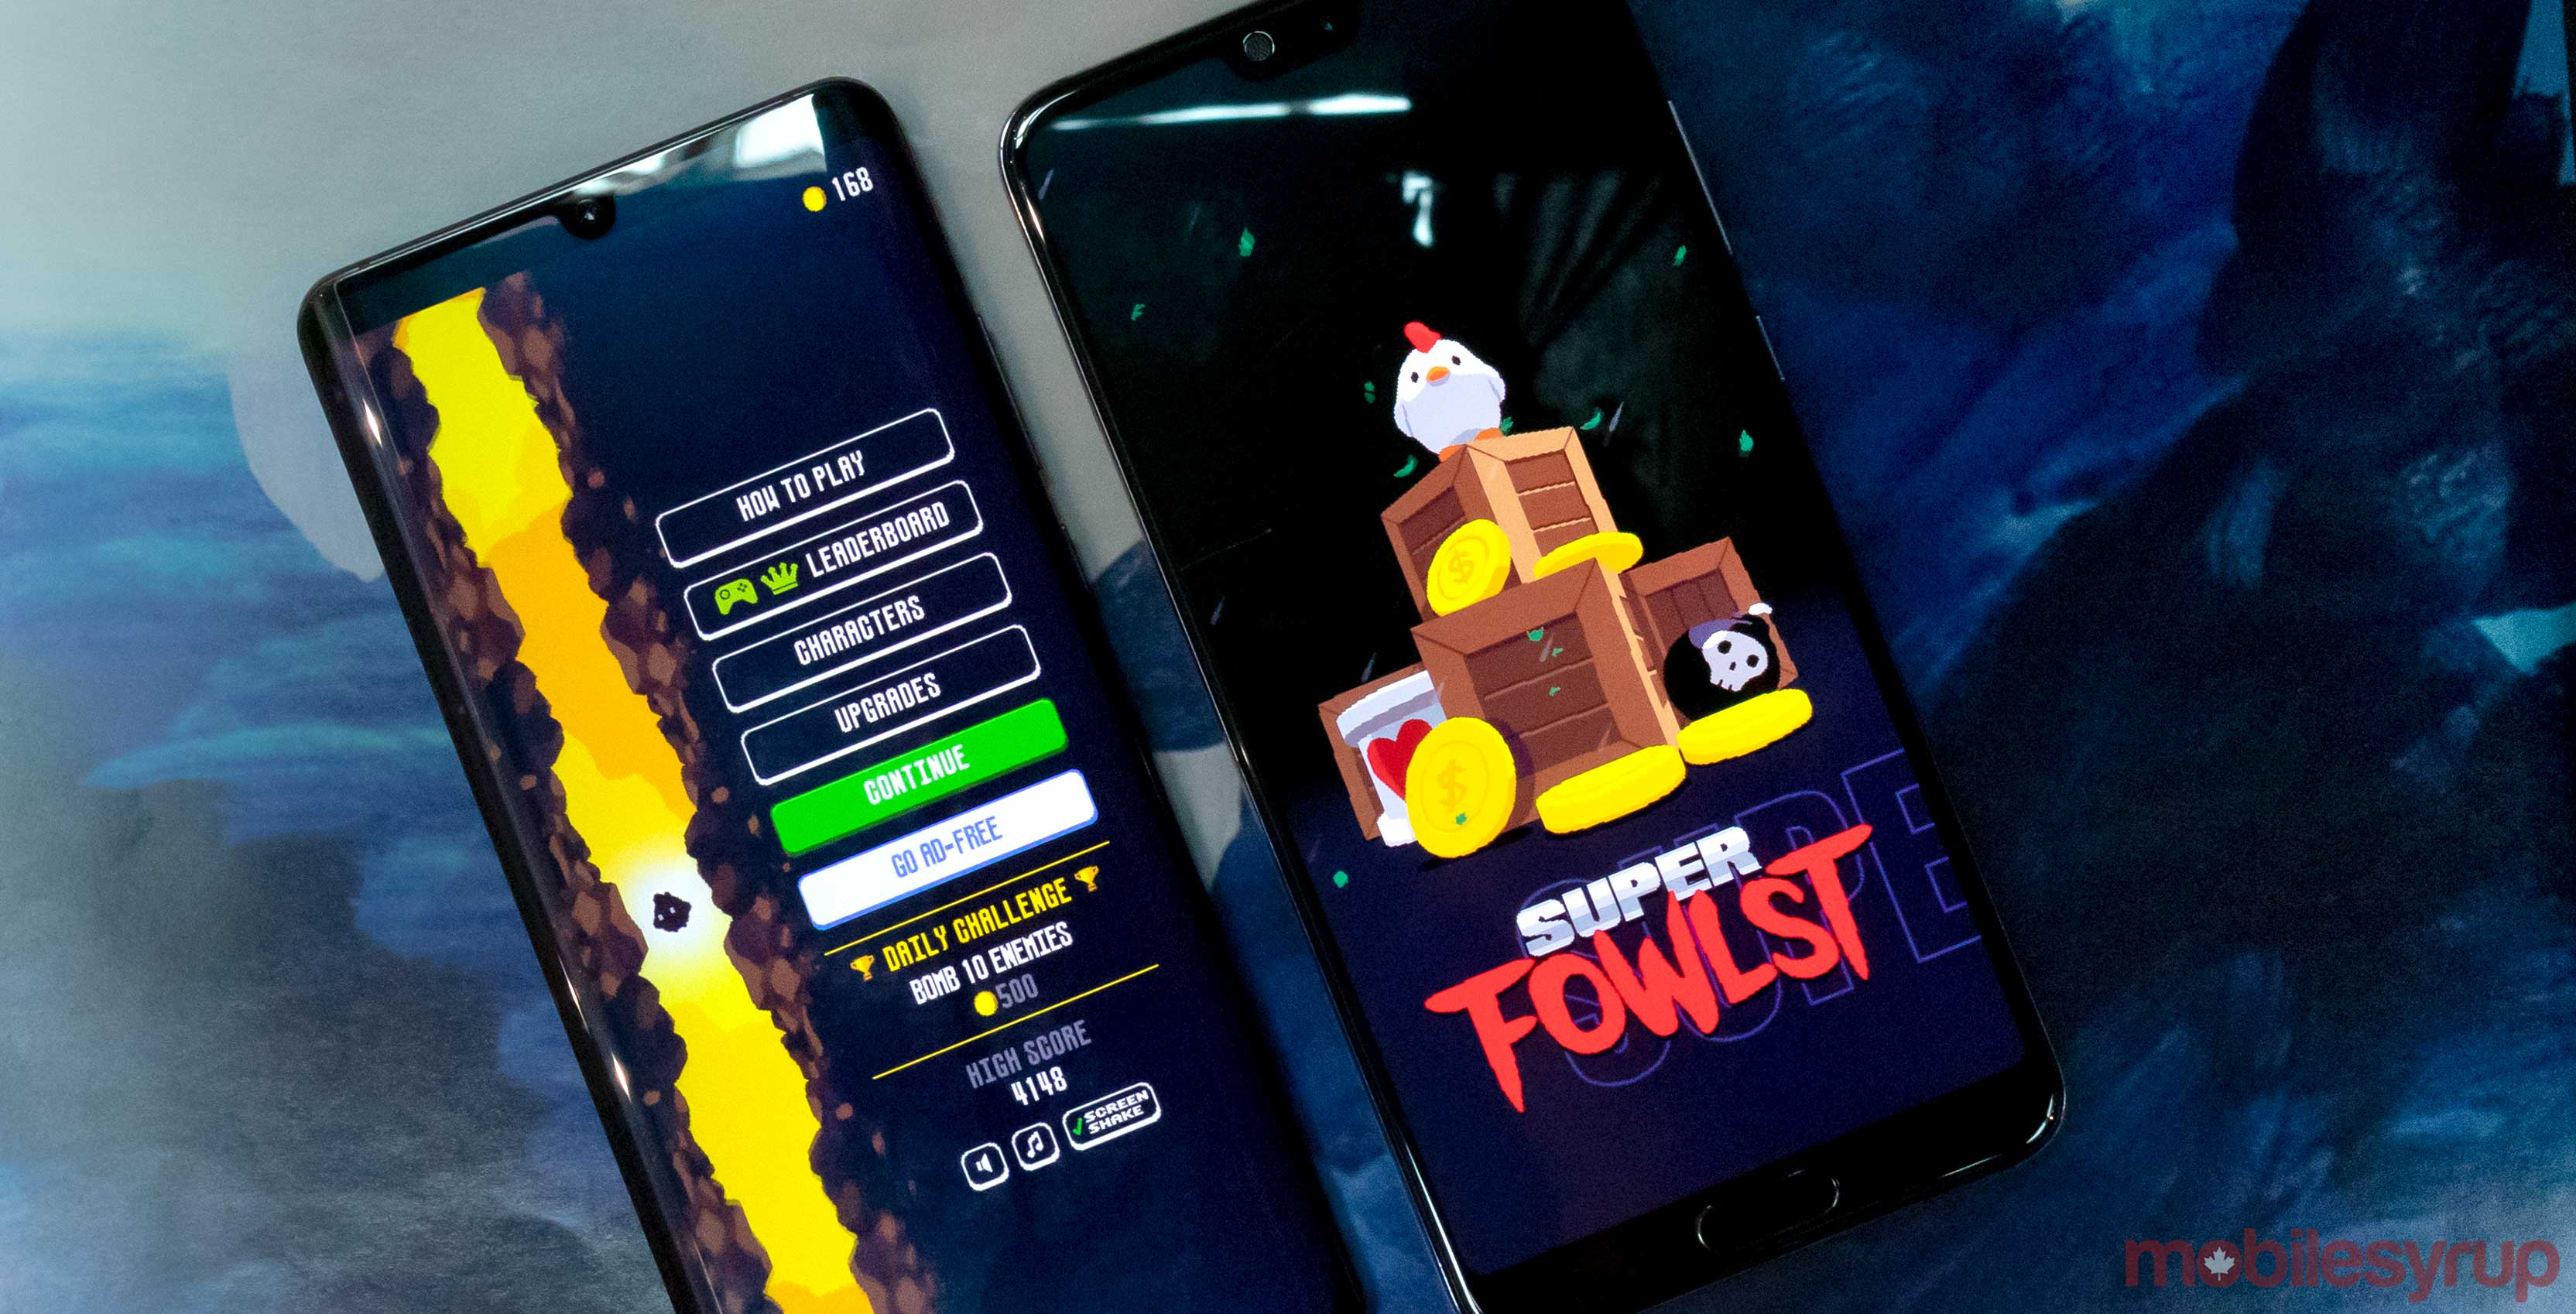 Super Fowlst is the insane, chicken-based platformer you need to